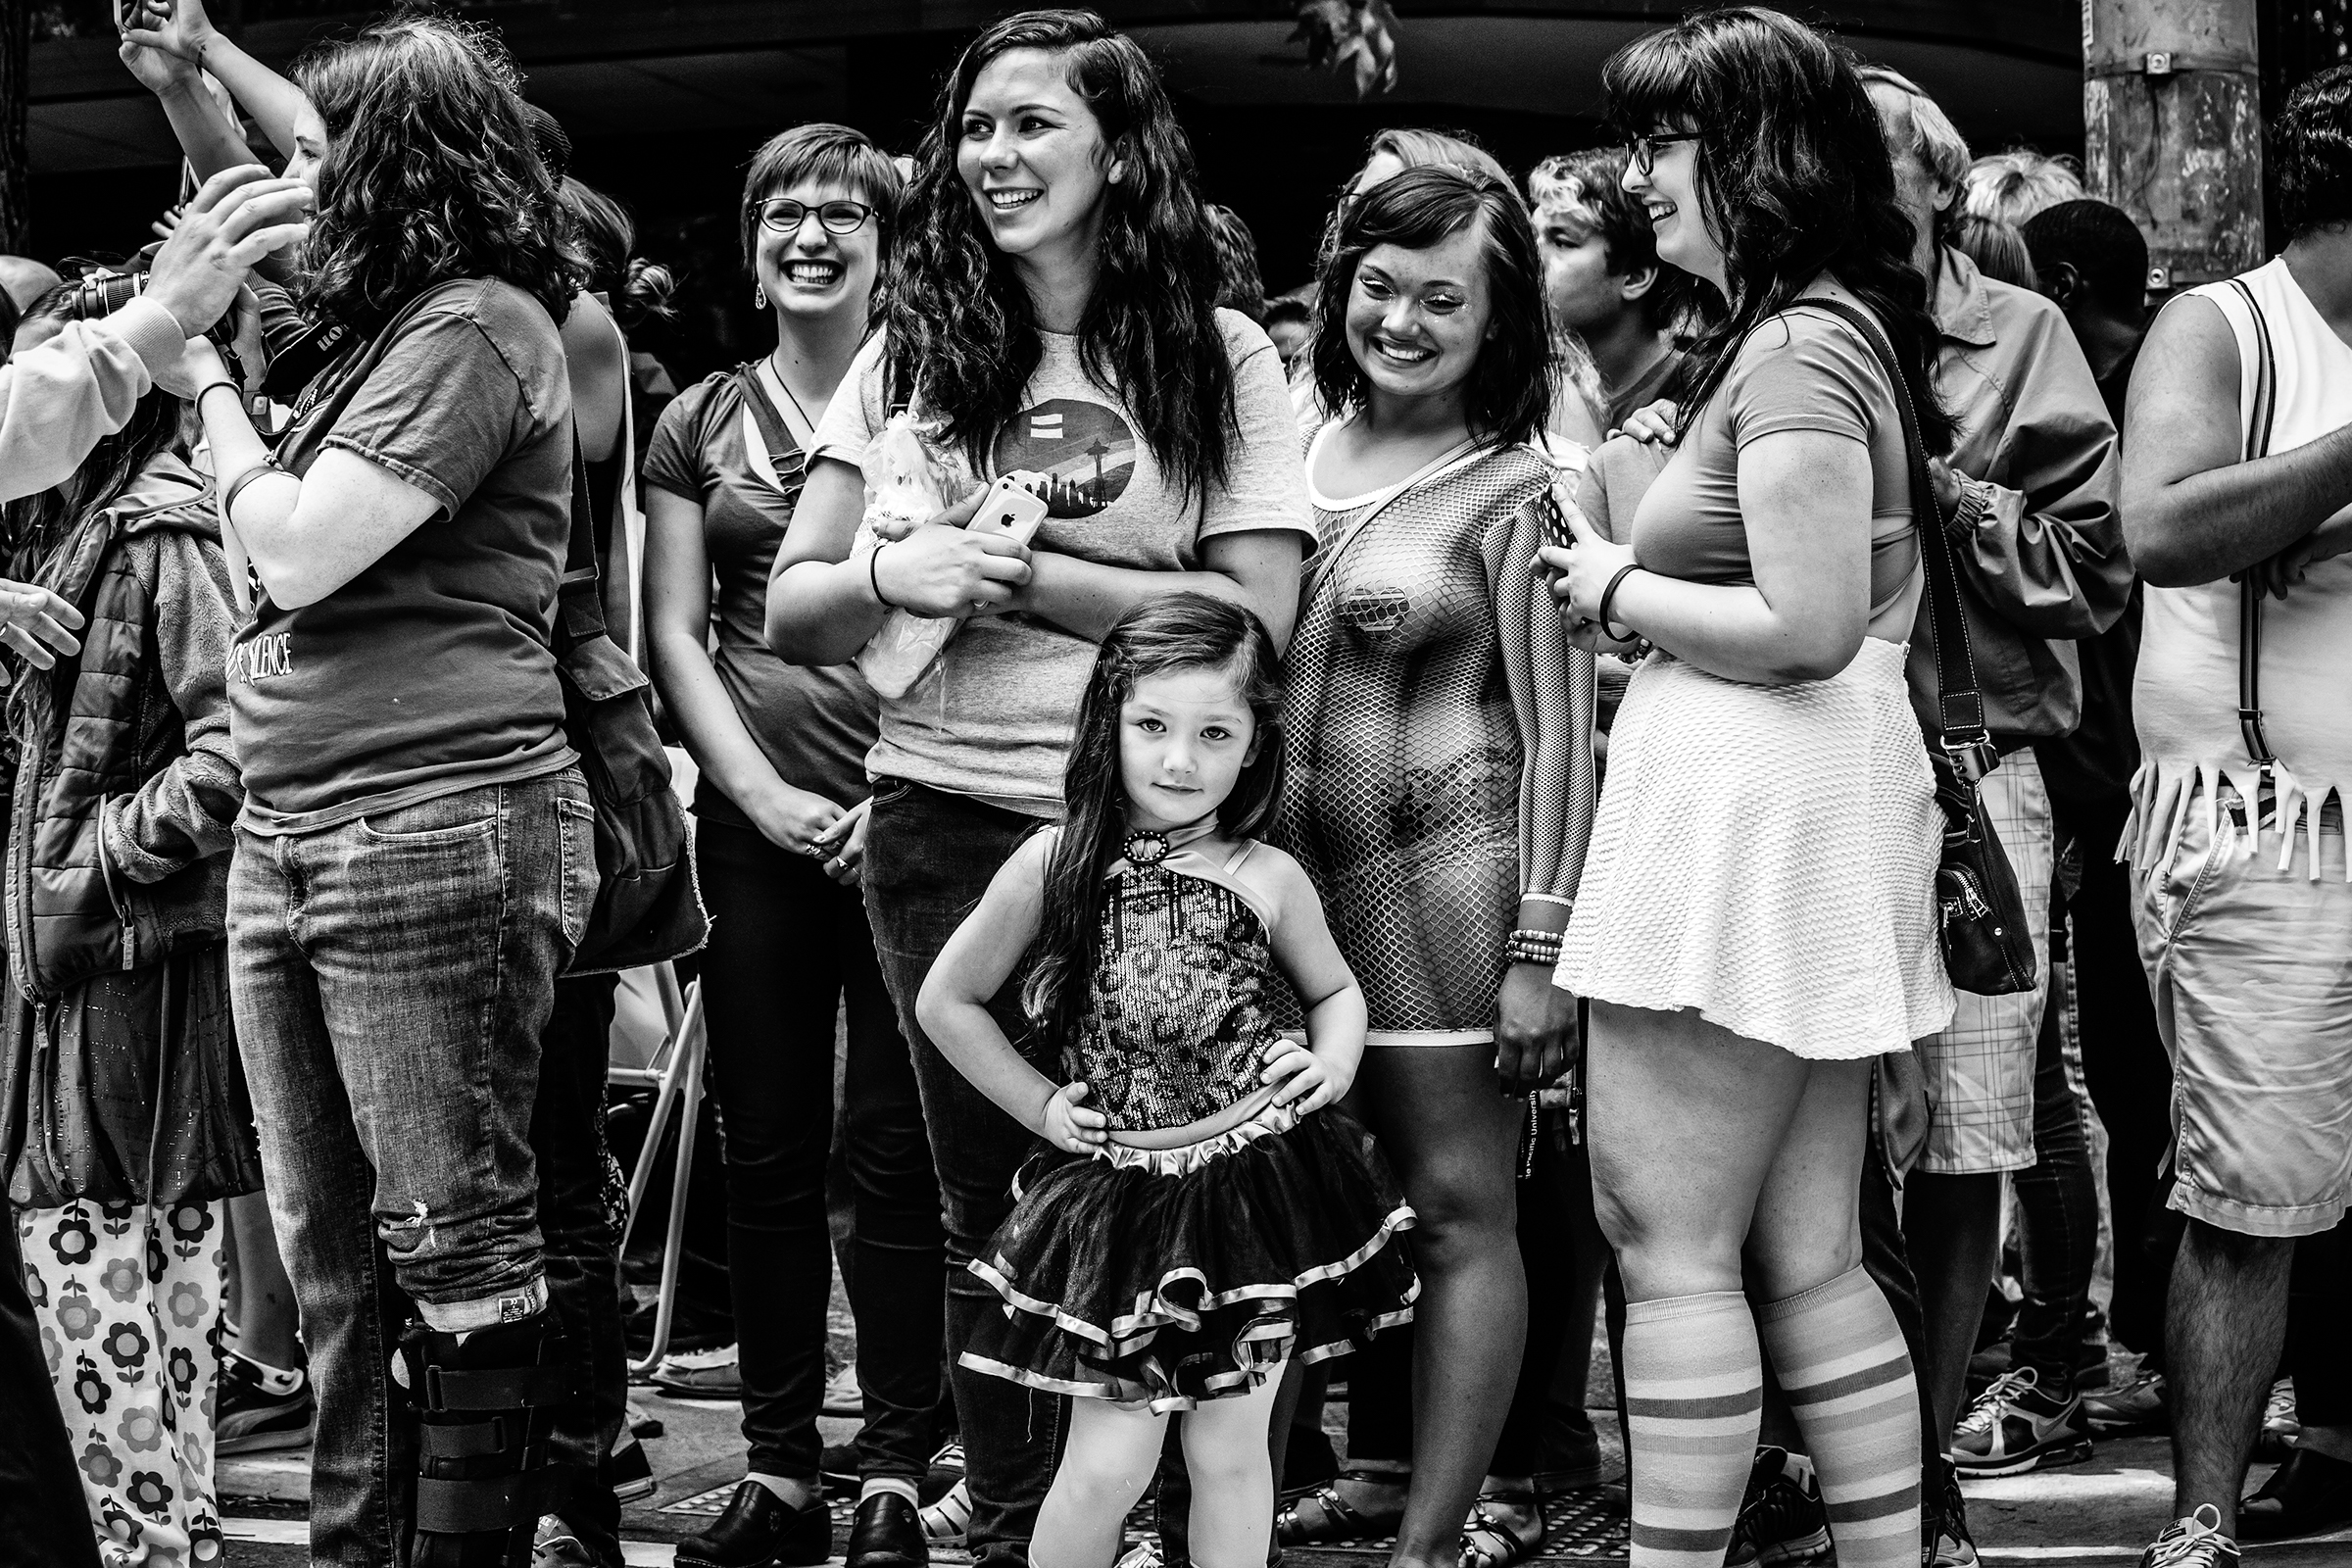 A young diva poses for the camera at Seattle Pride Parade on June 29th, 2014.